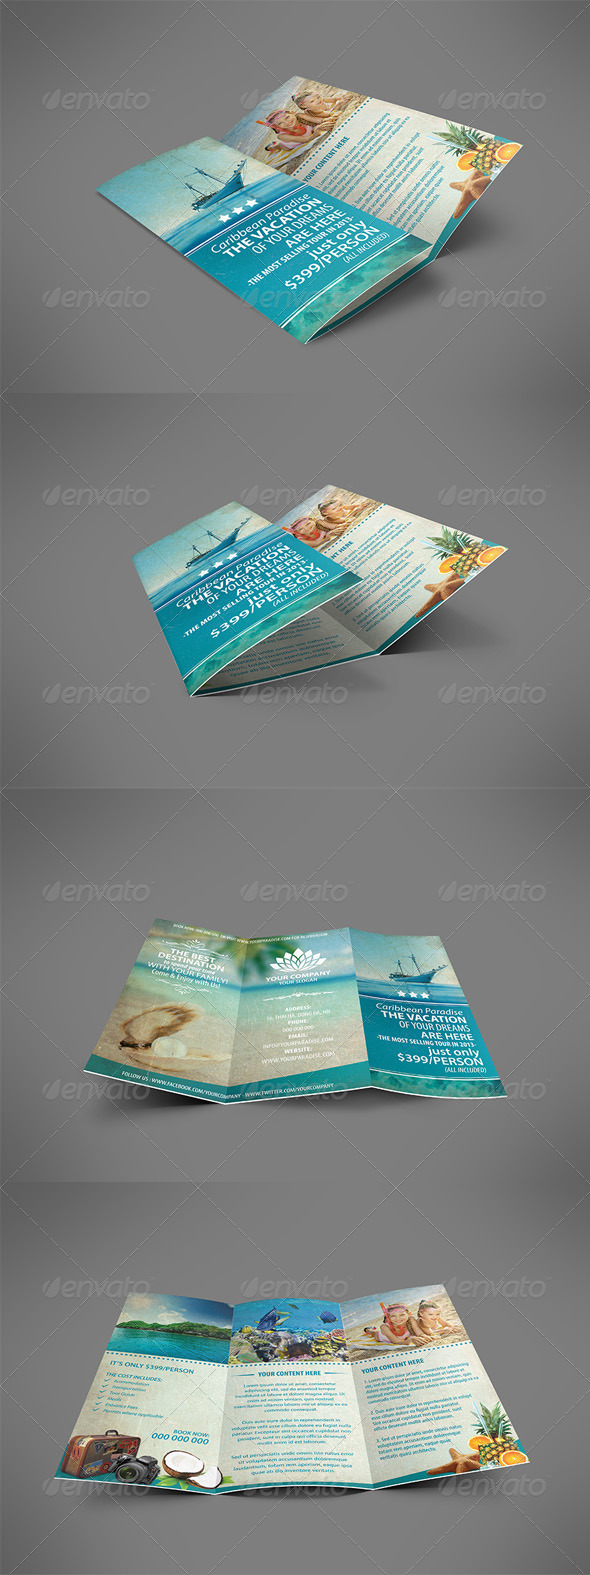 Vintage Travel Brochure Tri-fold - Brochures Print Templates